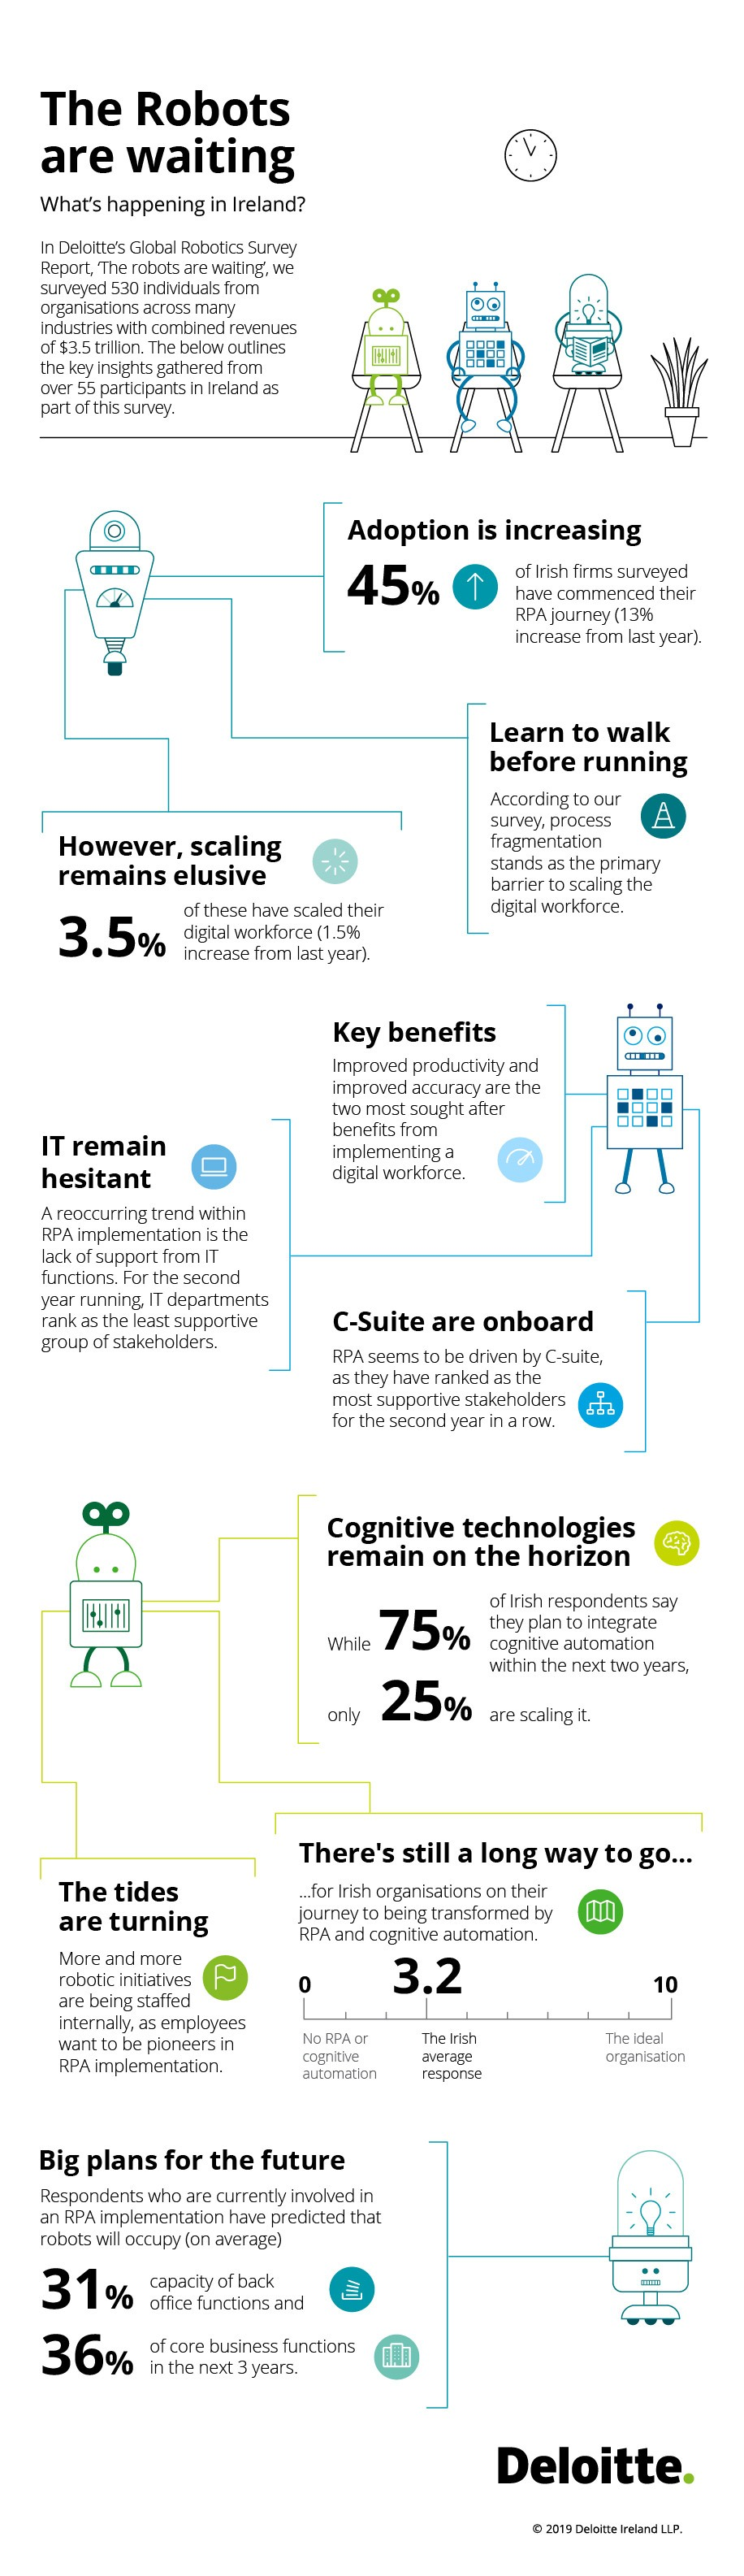 Infographic summarising the results of the Deloitte survey, which can be accessed by clicking the link.